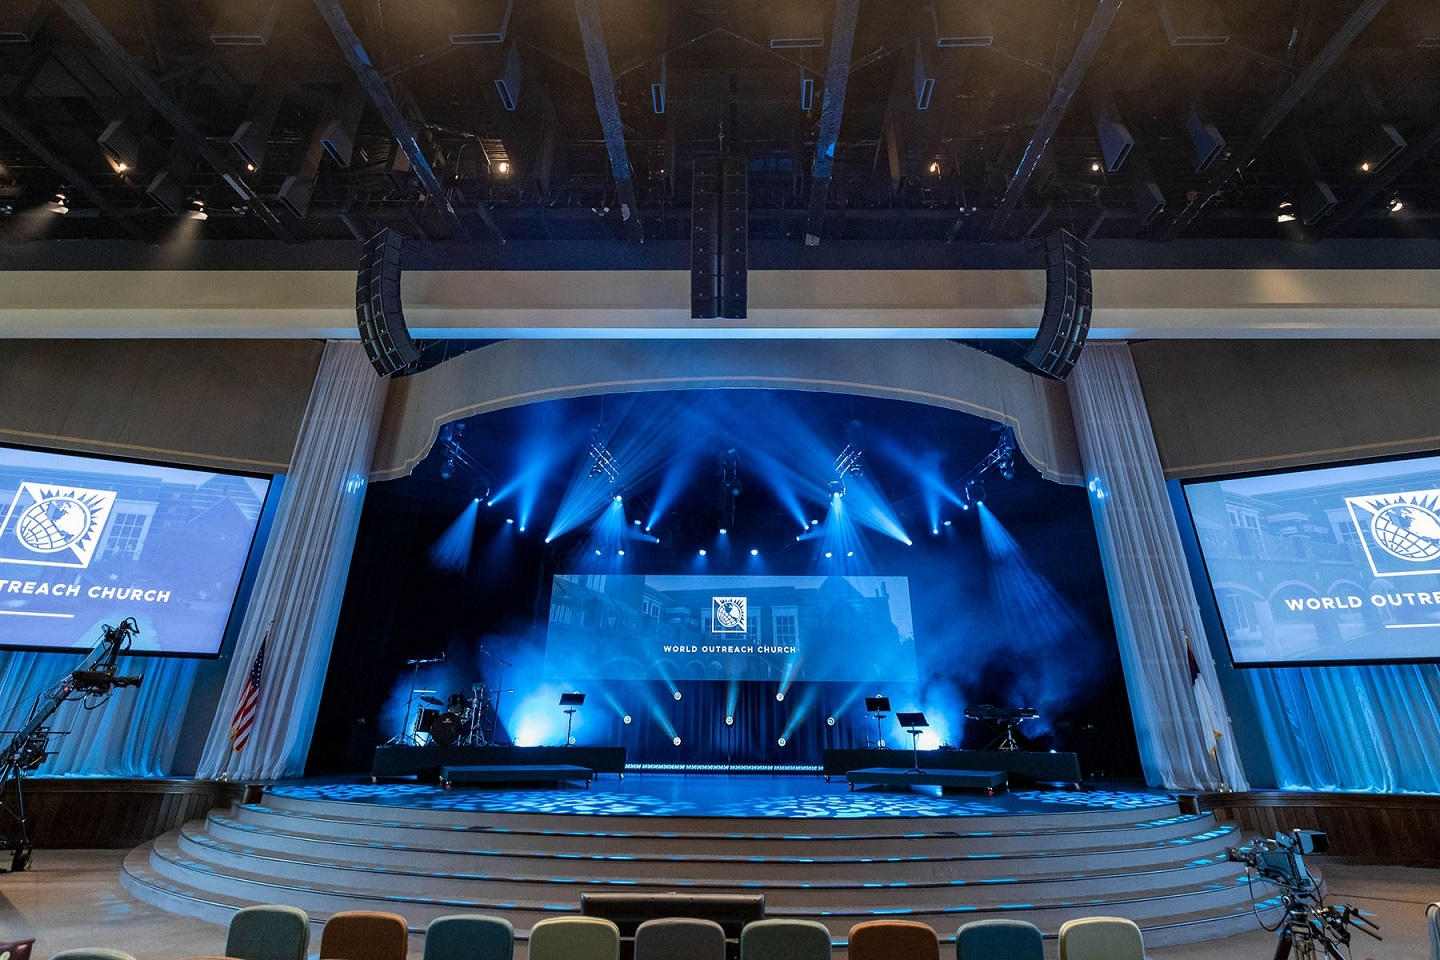 World Outreach Church Becomes First House of Worship to Install L-Acoustics K3i featured image